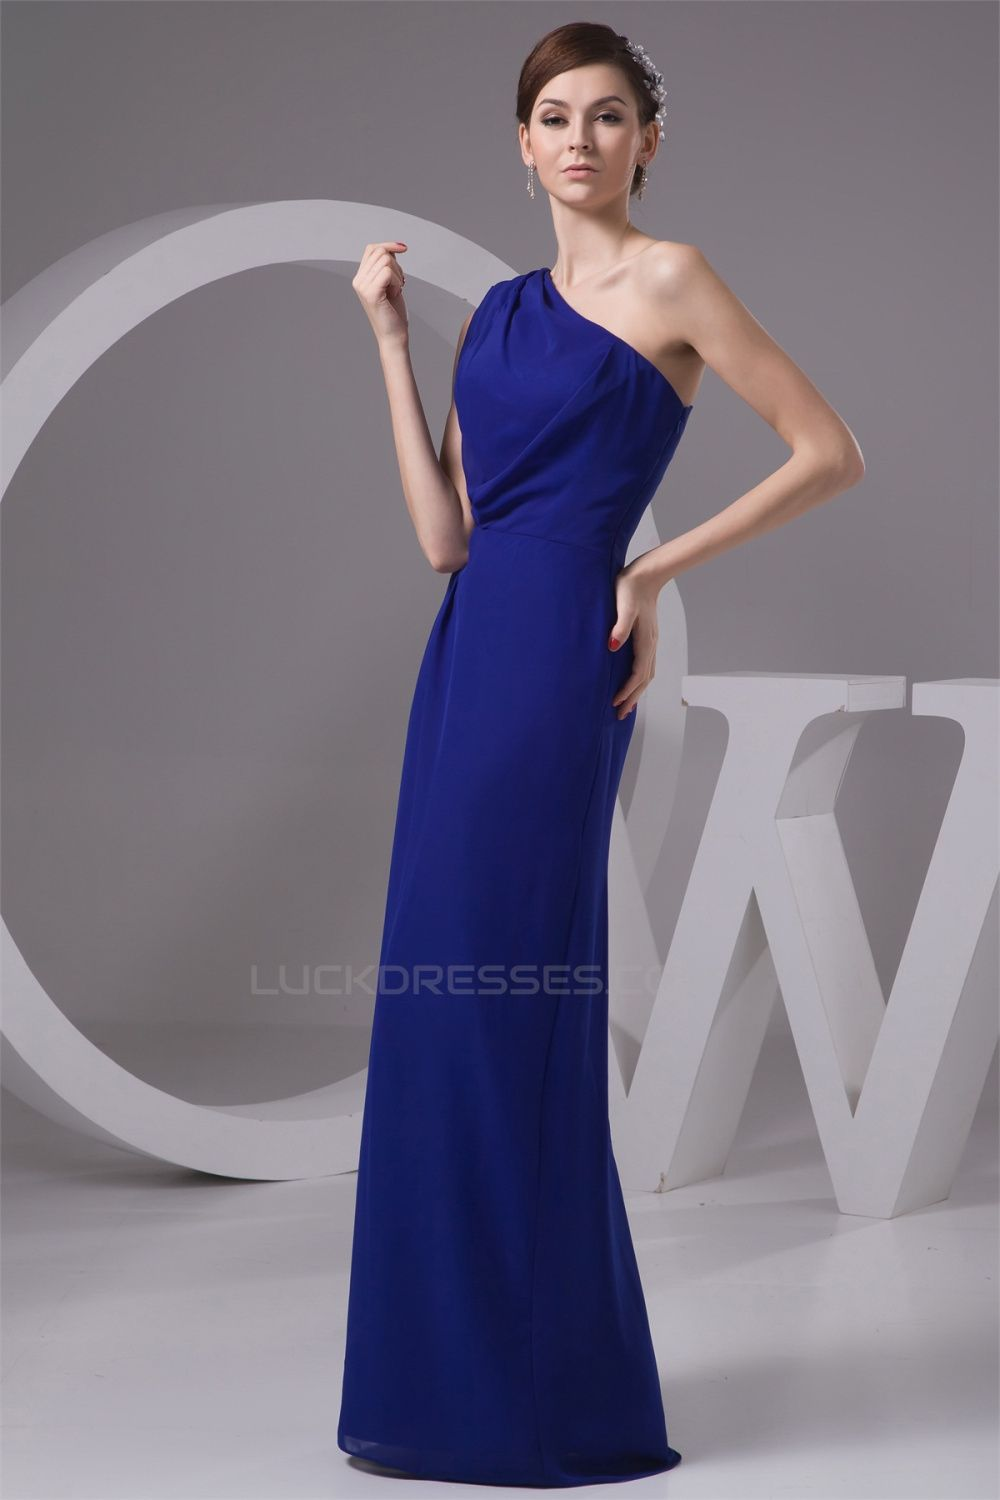 Floor length chiffon one shoulder long blue bridesmaid dresses floor length chiffon one shoulder long blue bridesmaid dresses under 100 02010099 ombrellifo Image collections